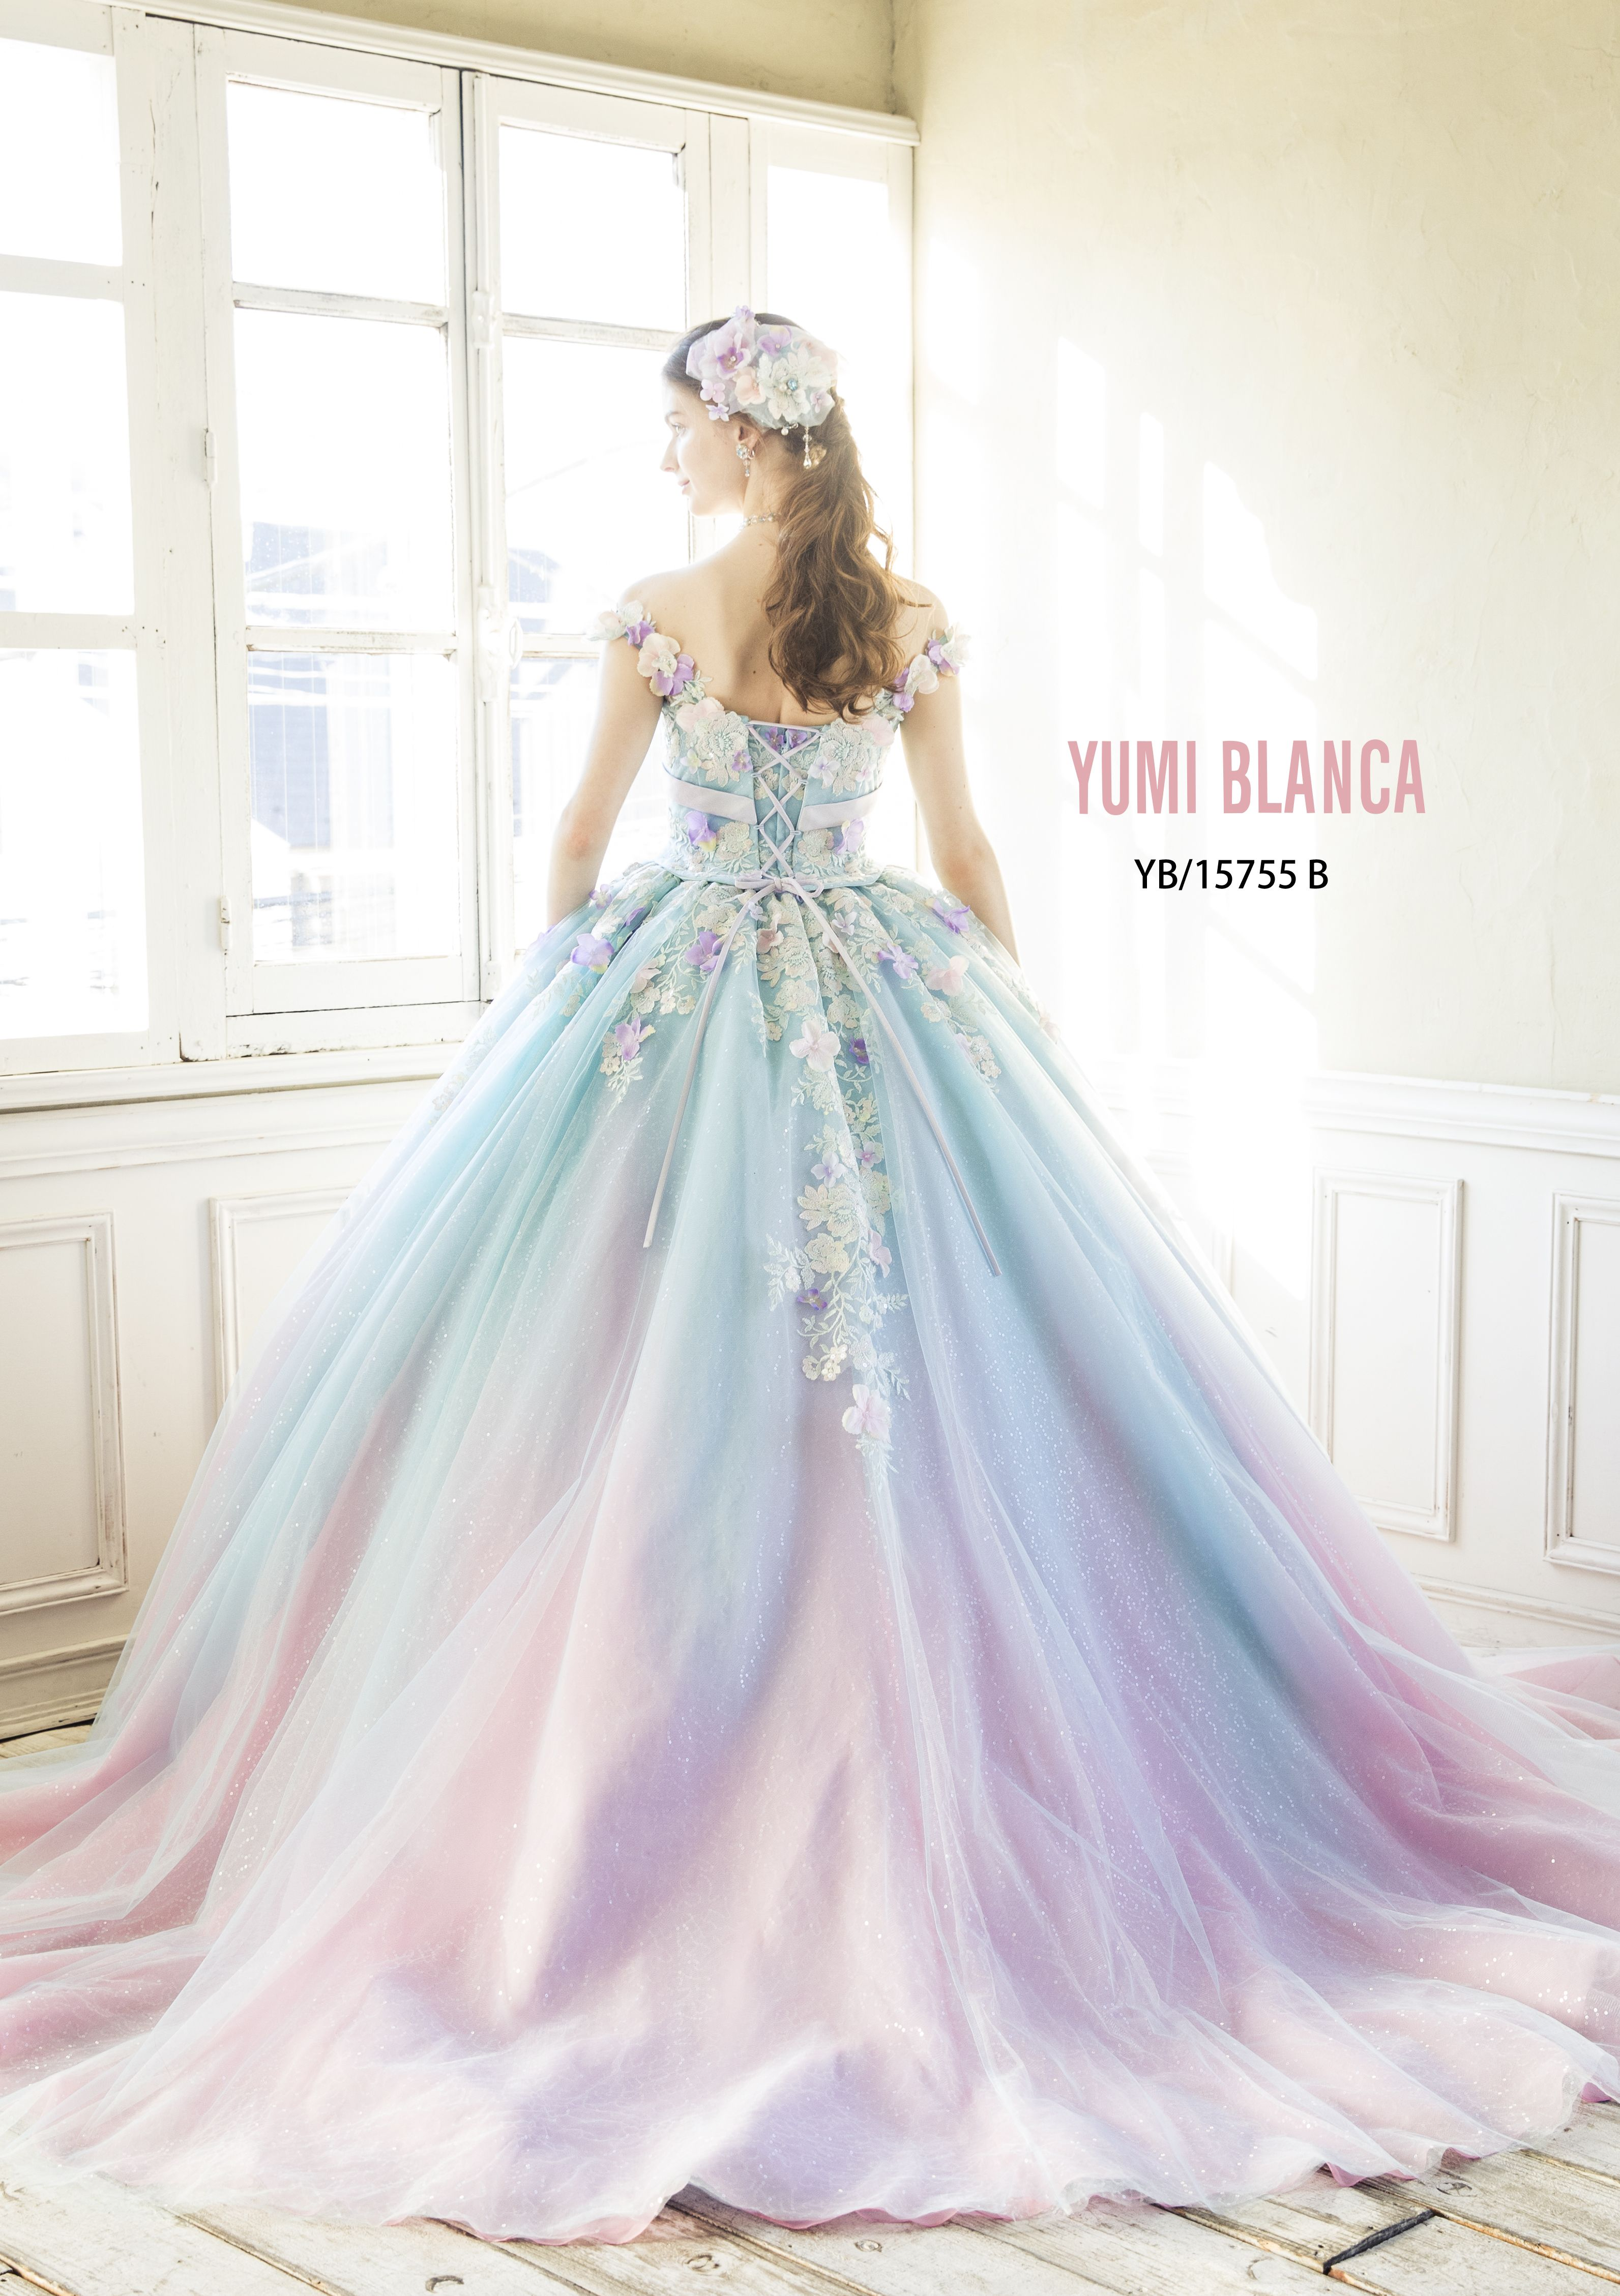 Pin By Guadalupe Gugliotti On Yumikatsura Fairytale Dress Ball Dresses Fantasy Gowns